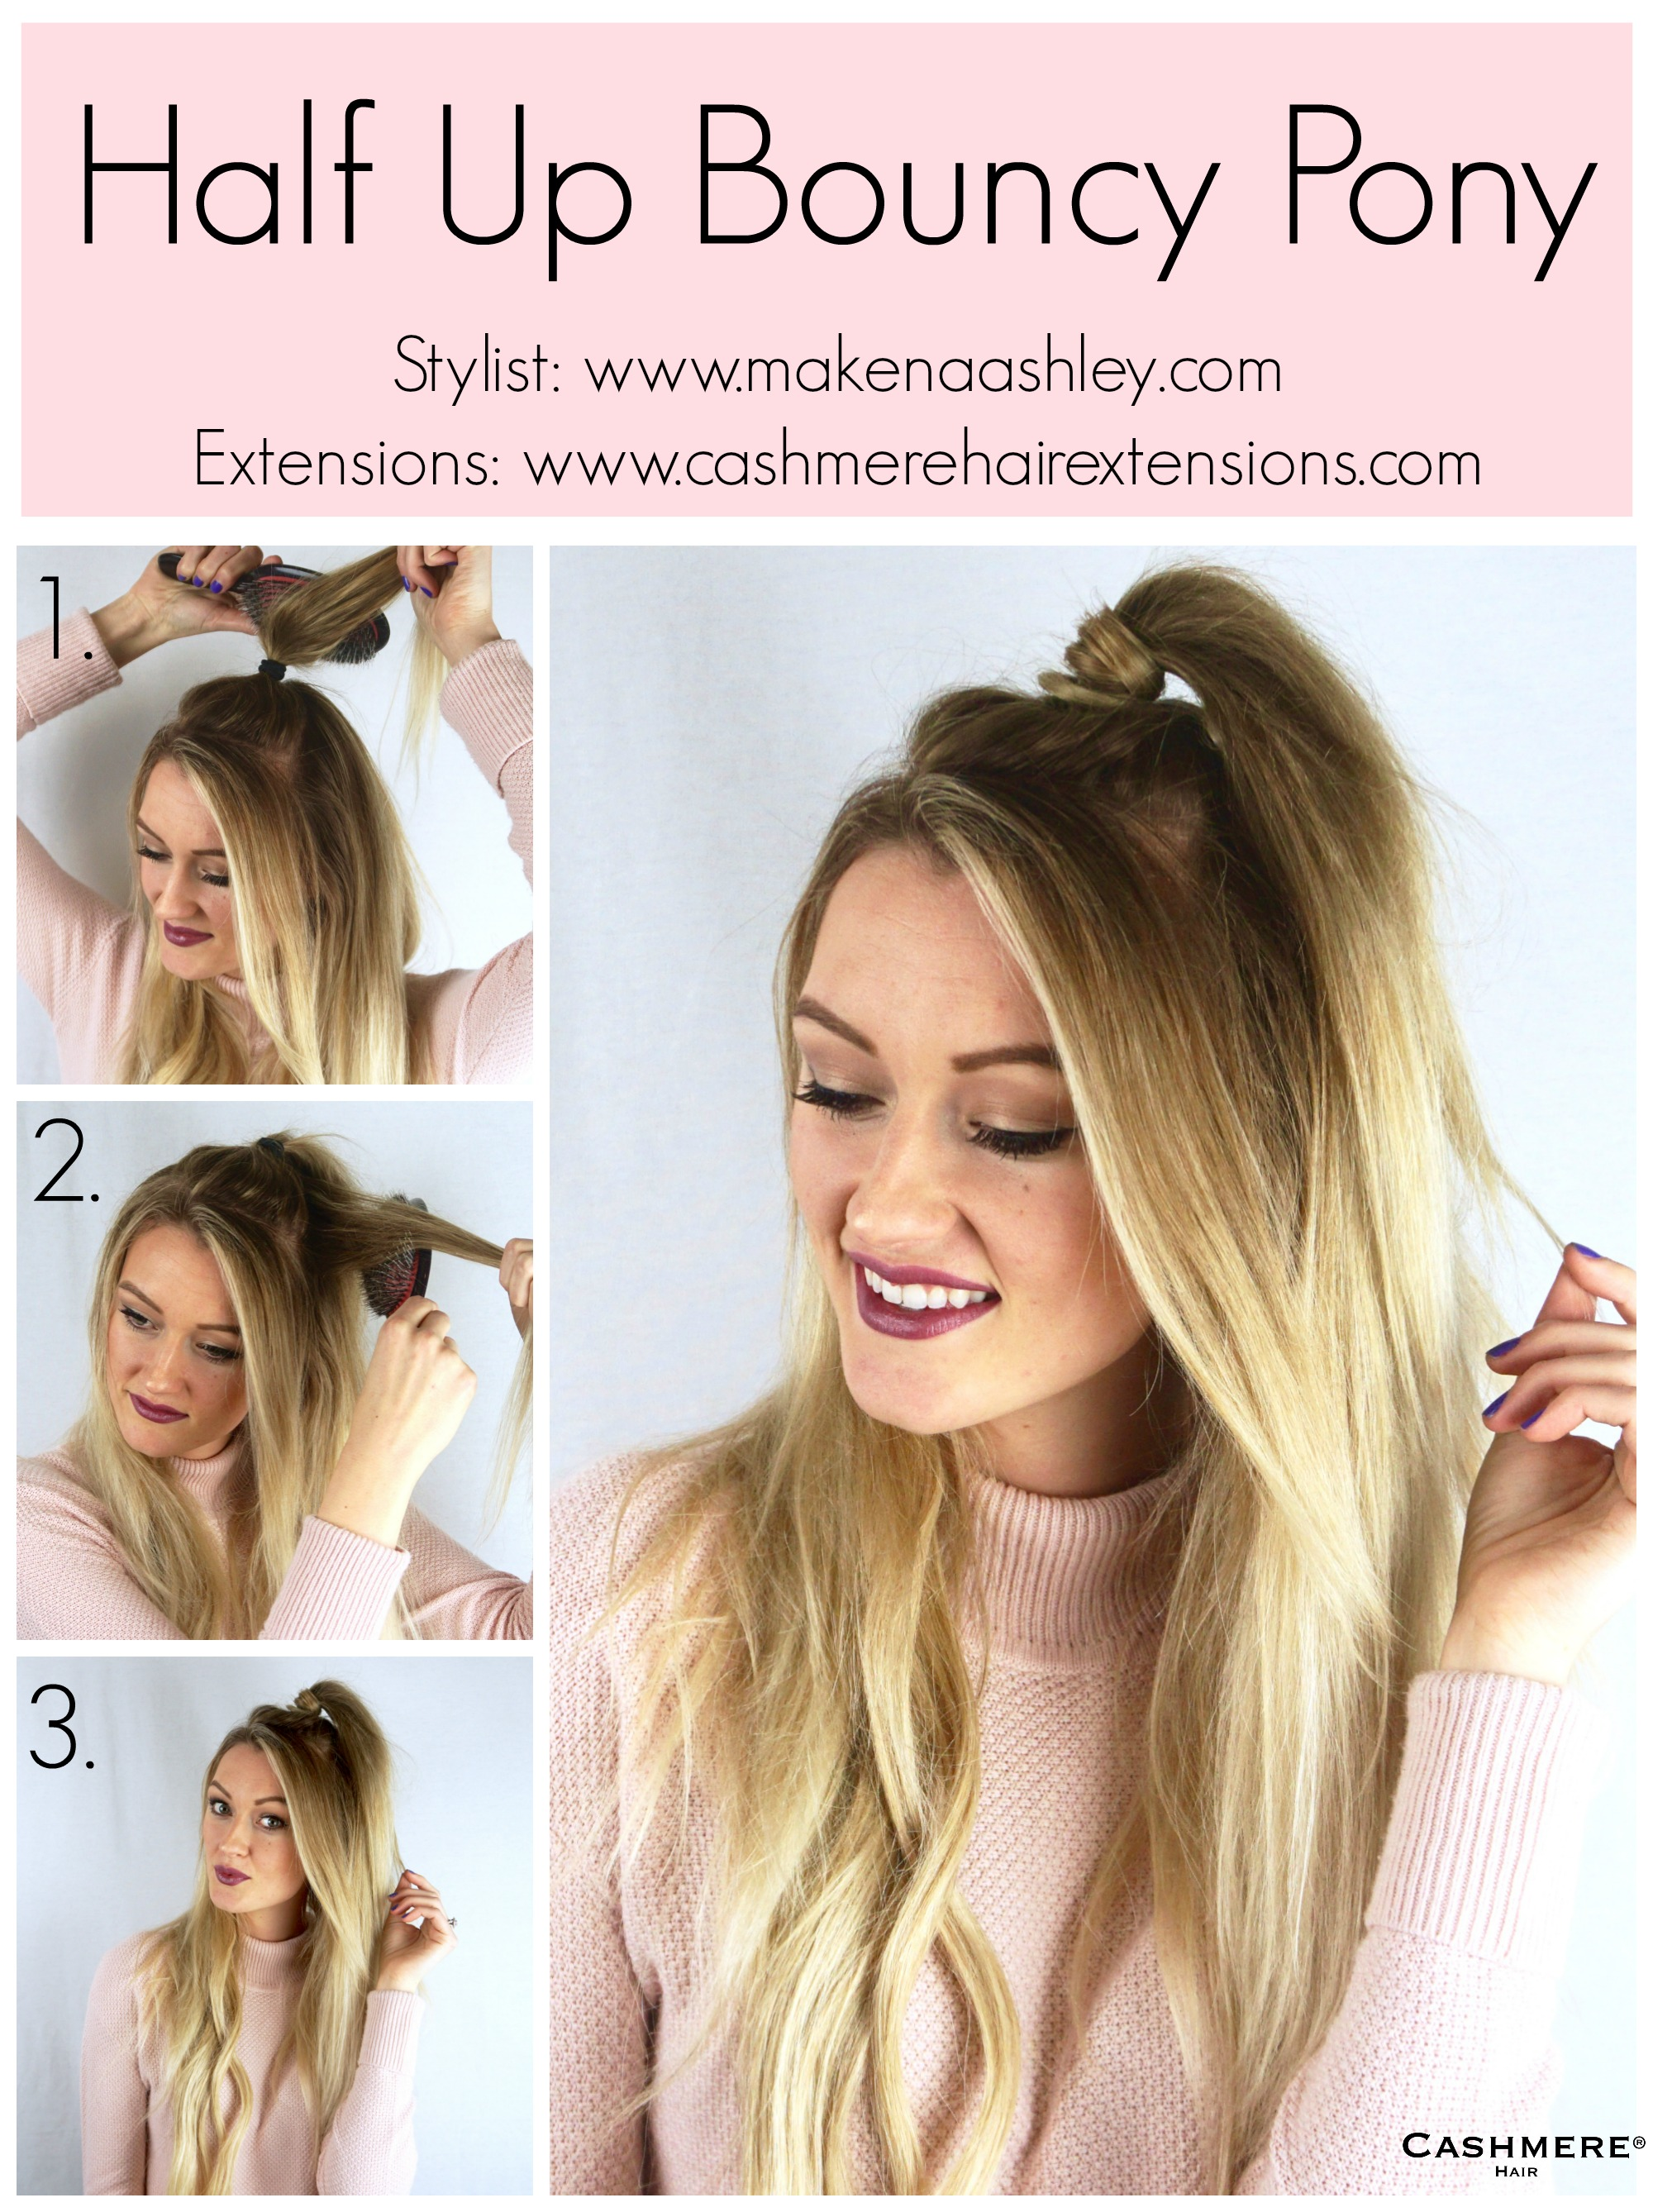 half-up-bouncy-pony-tutorial